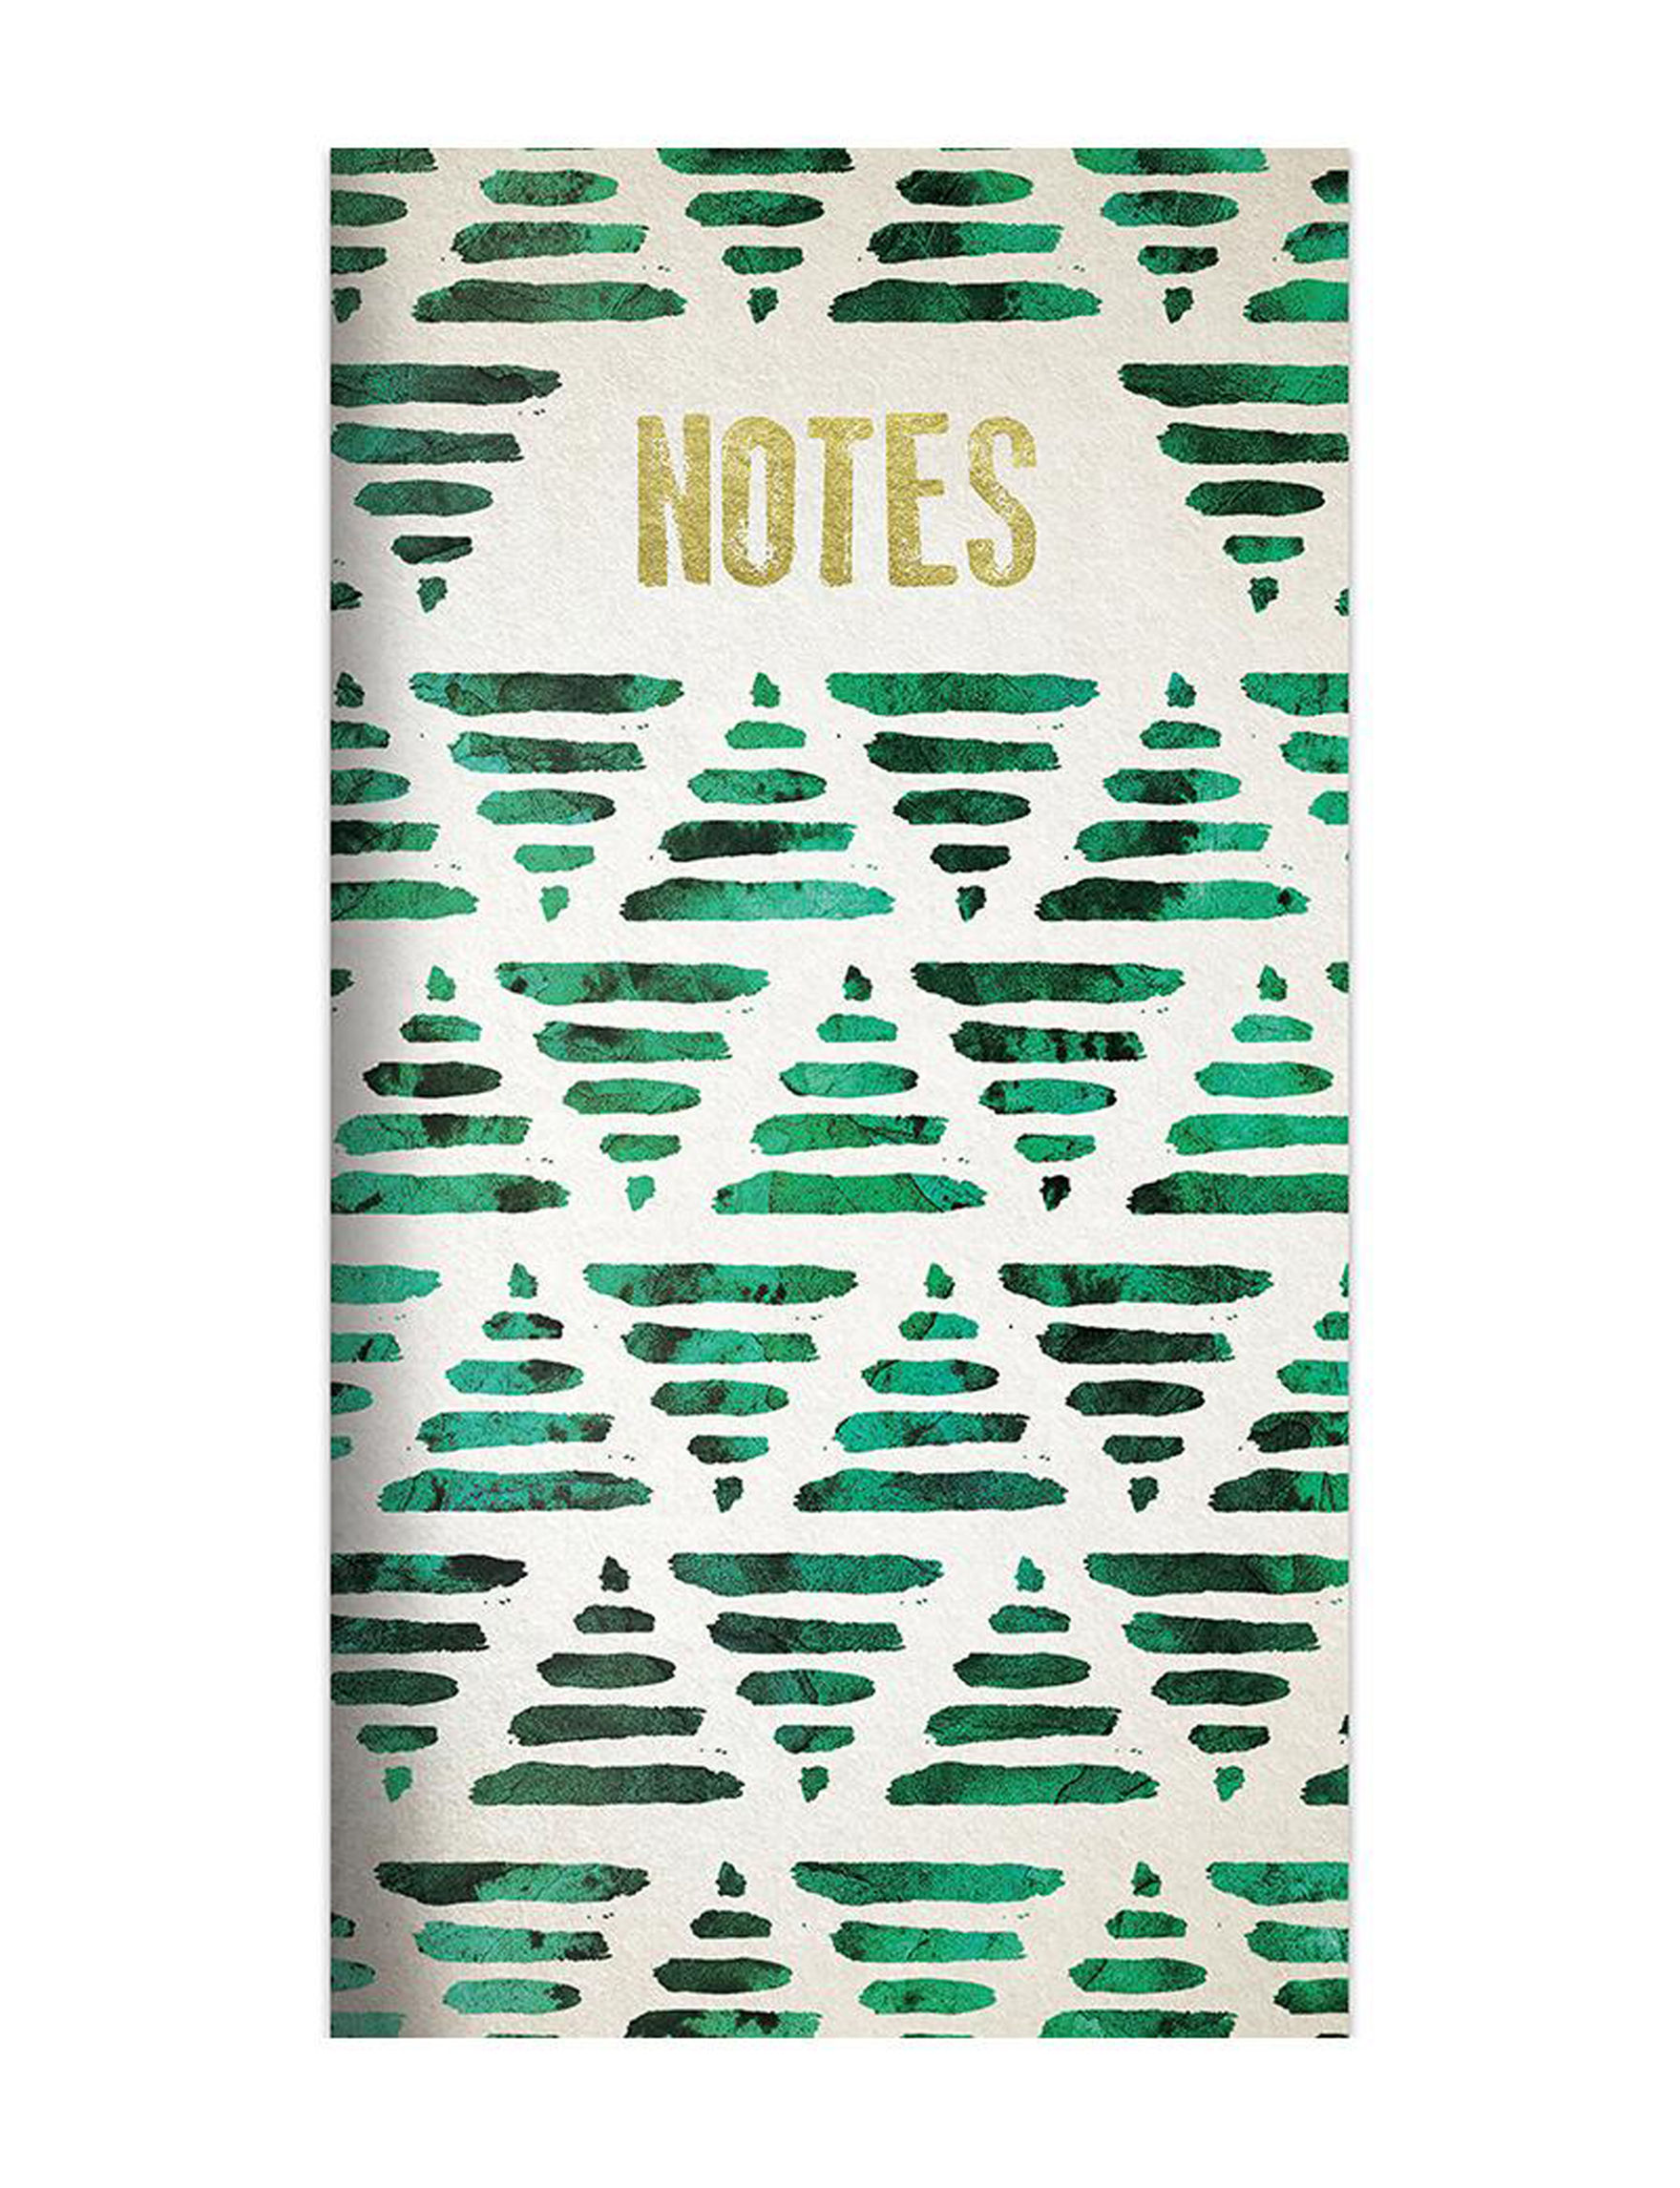 TF Publishing White Journals & Notepads School & Office Supplies